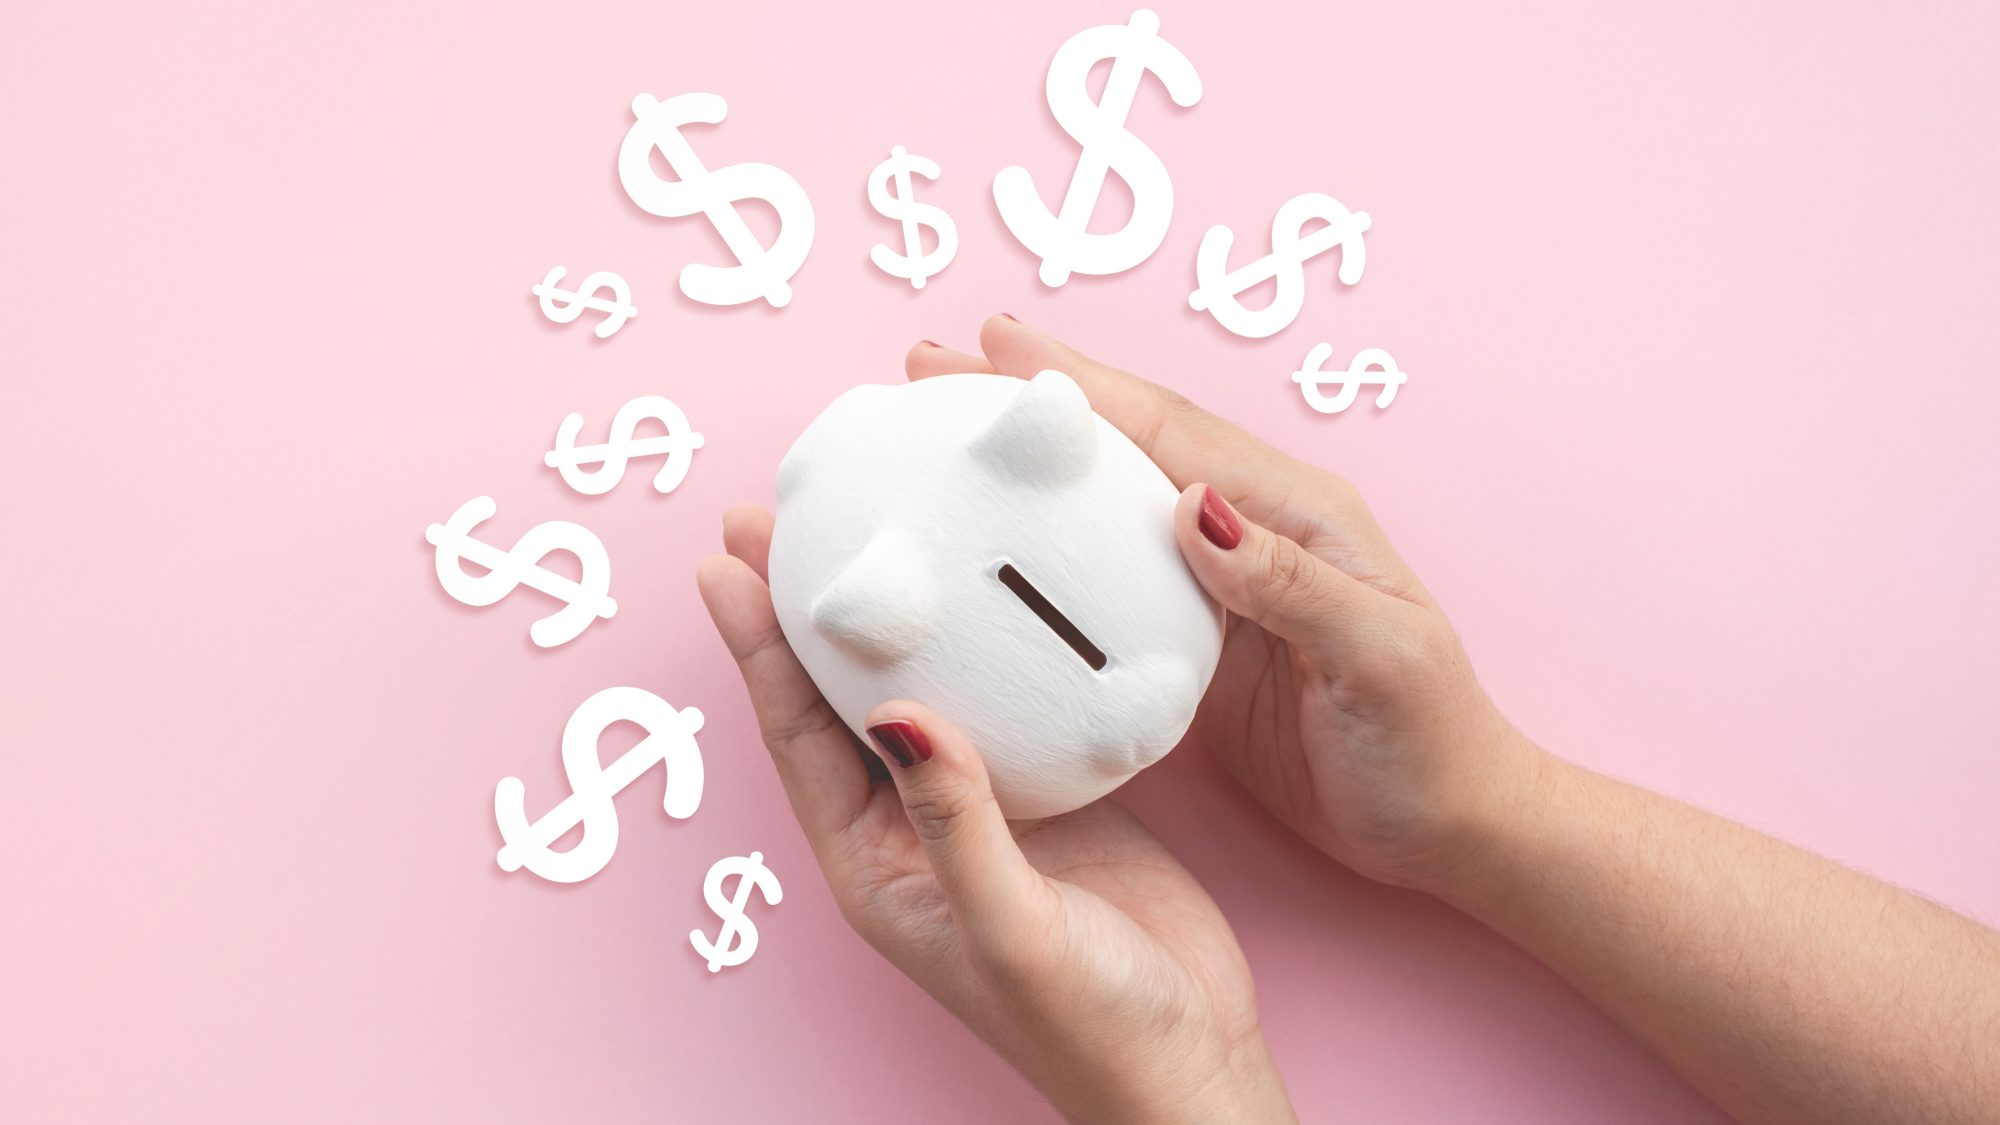 How to spend and save during coronavirus tout - piggy bank with dollar signs on pink background